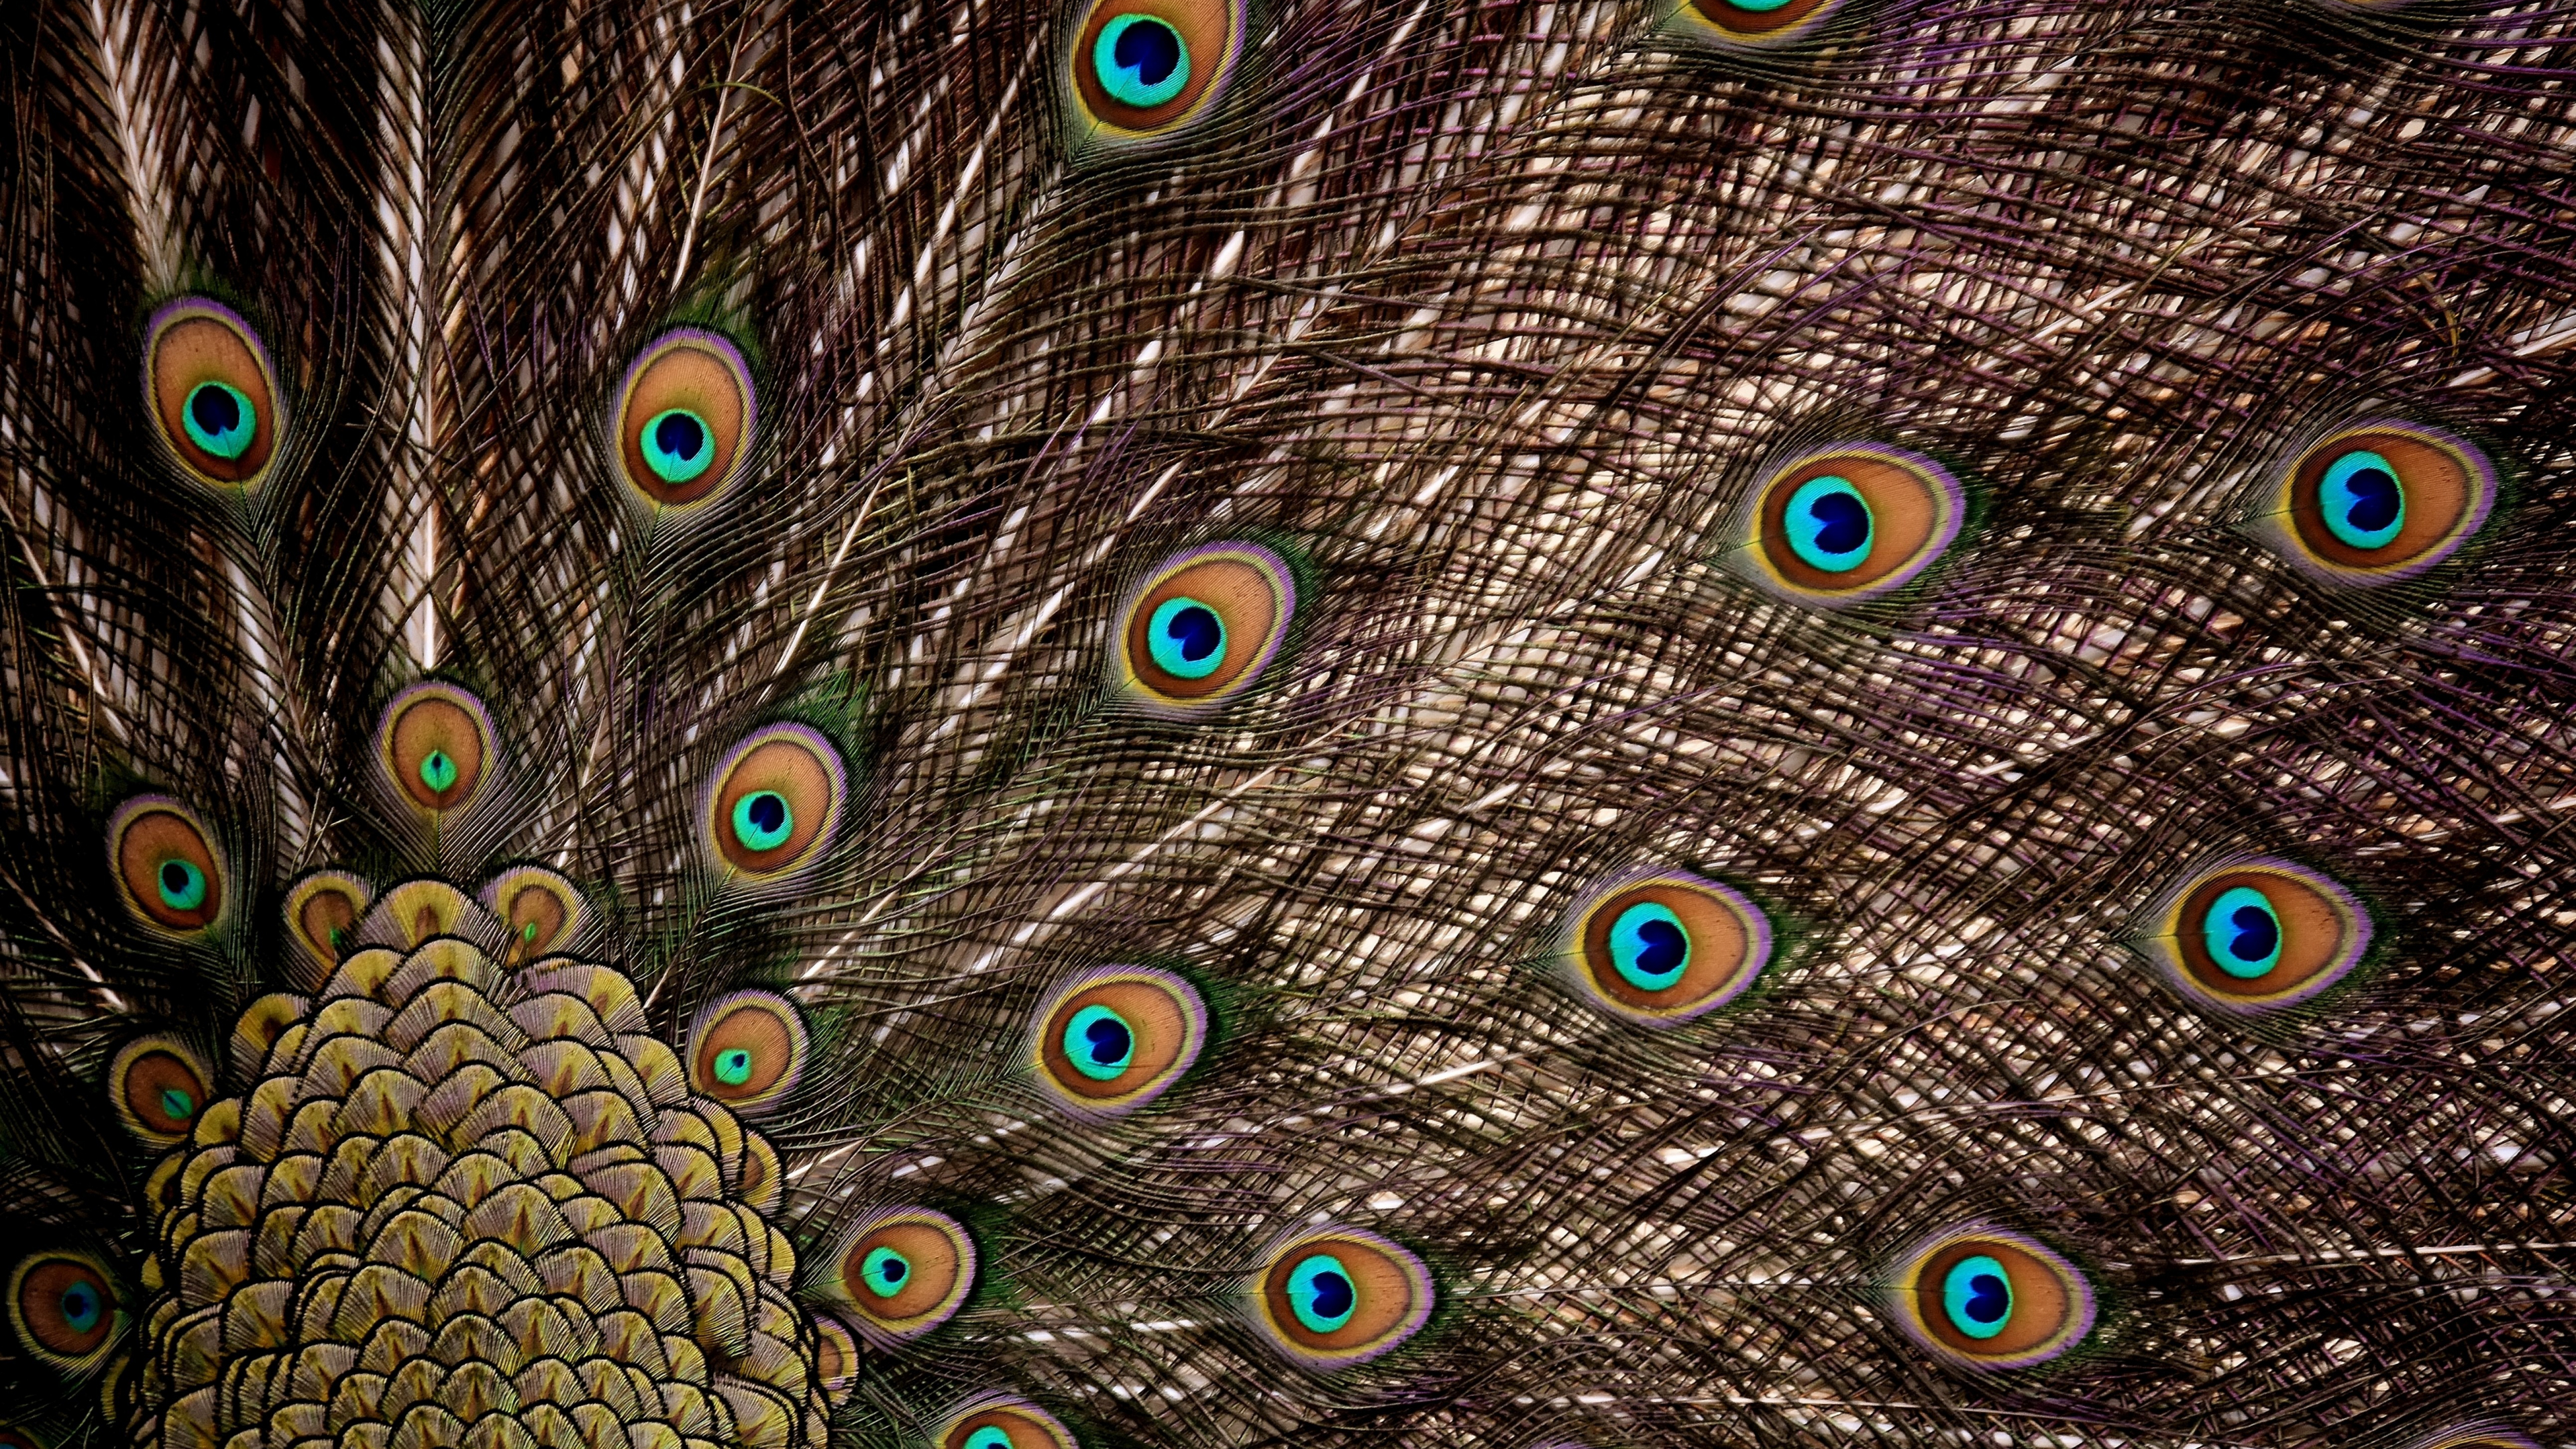 Download 3840x2160 Wallpaper Peacock, Feathers, Dance